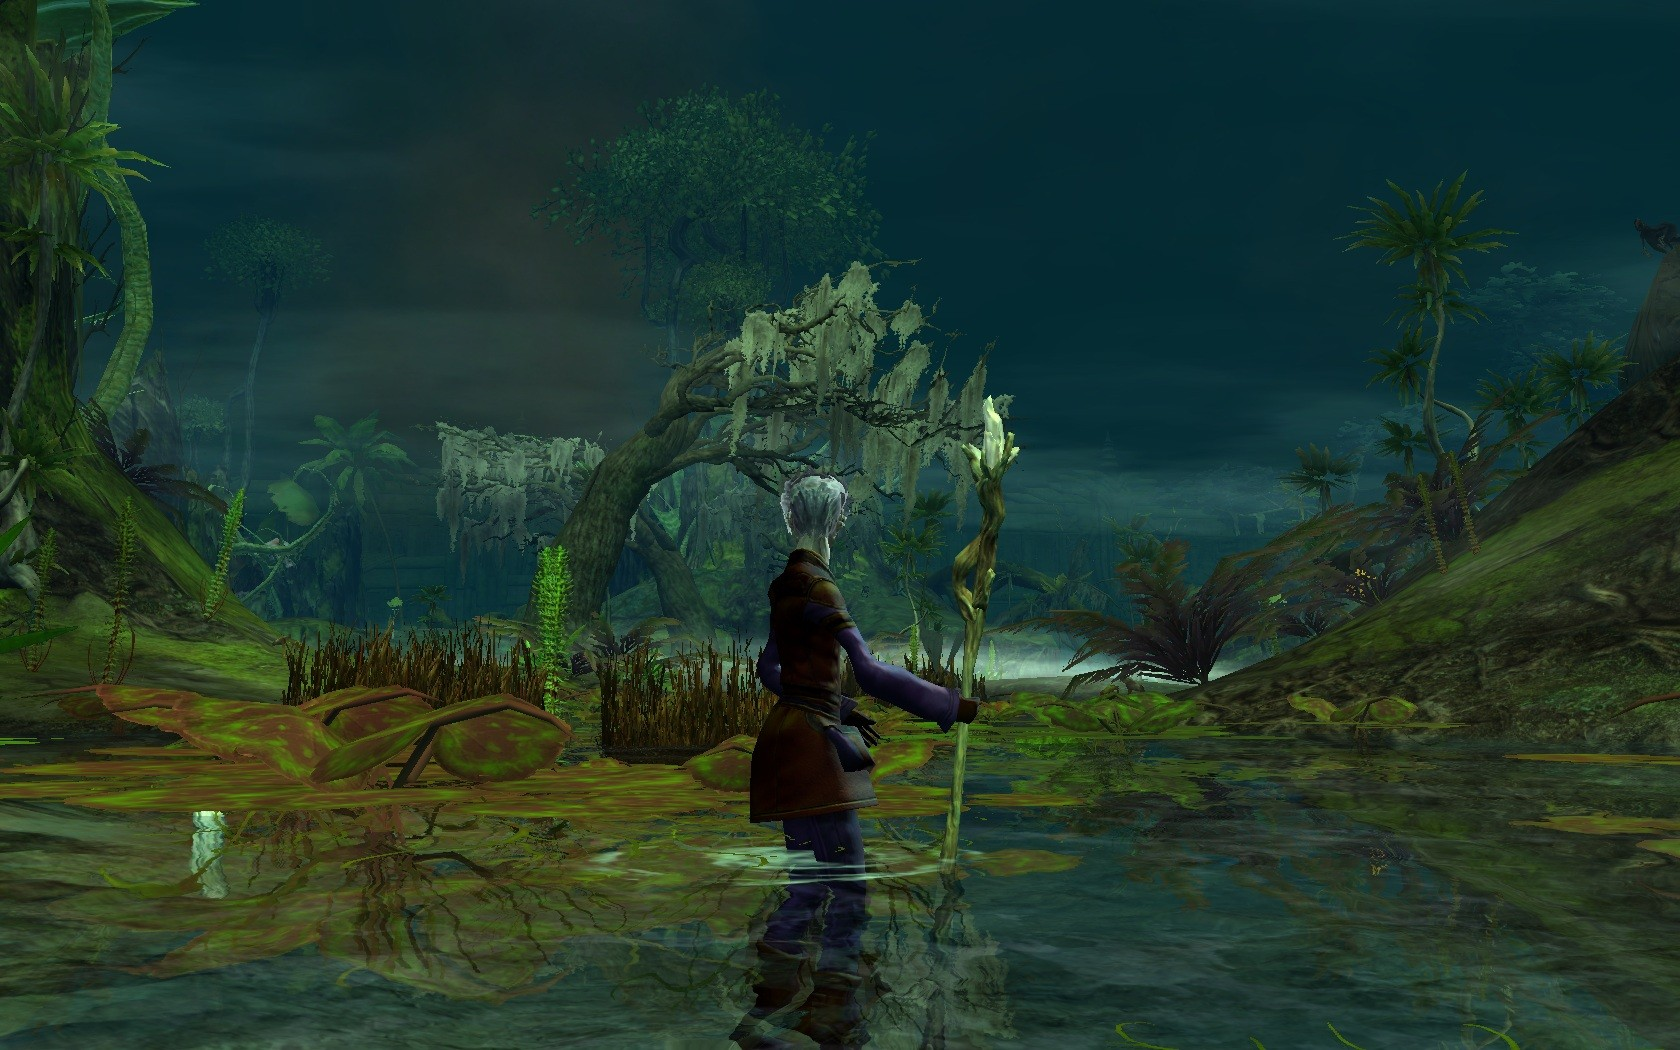 Guild Wars 2 - Sylvari starter zone is the best one imo.